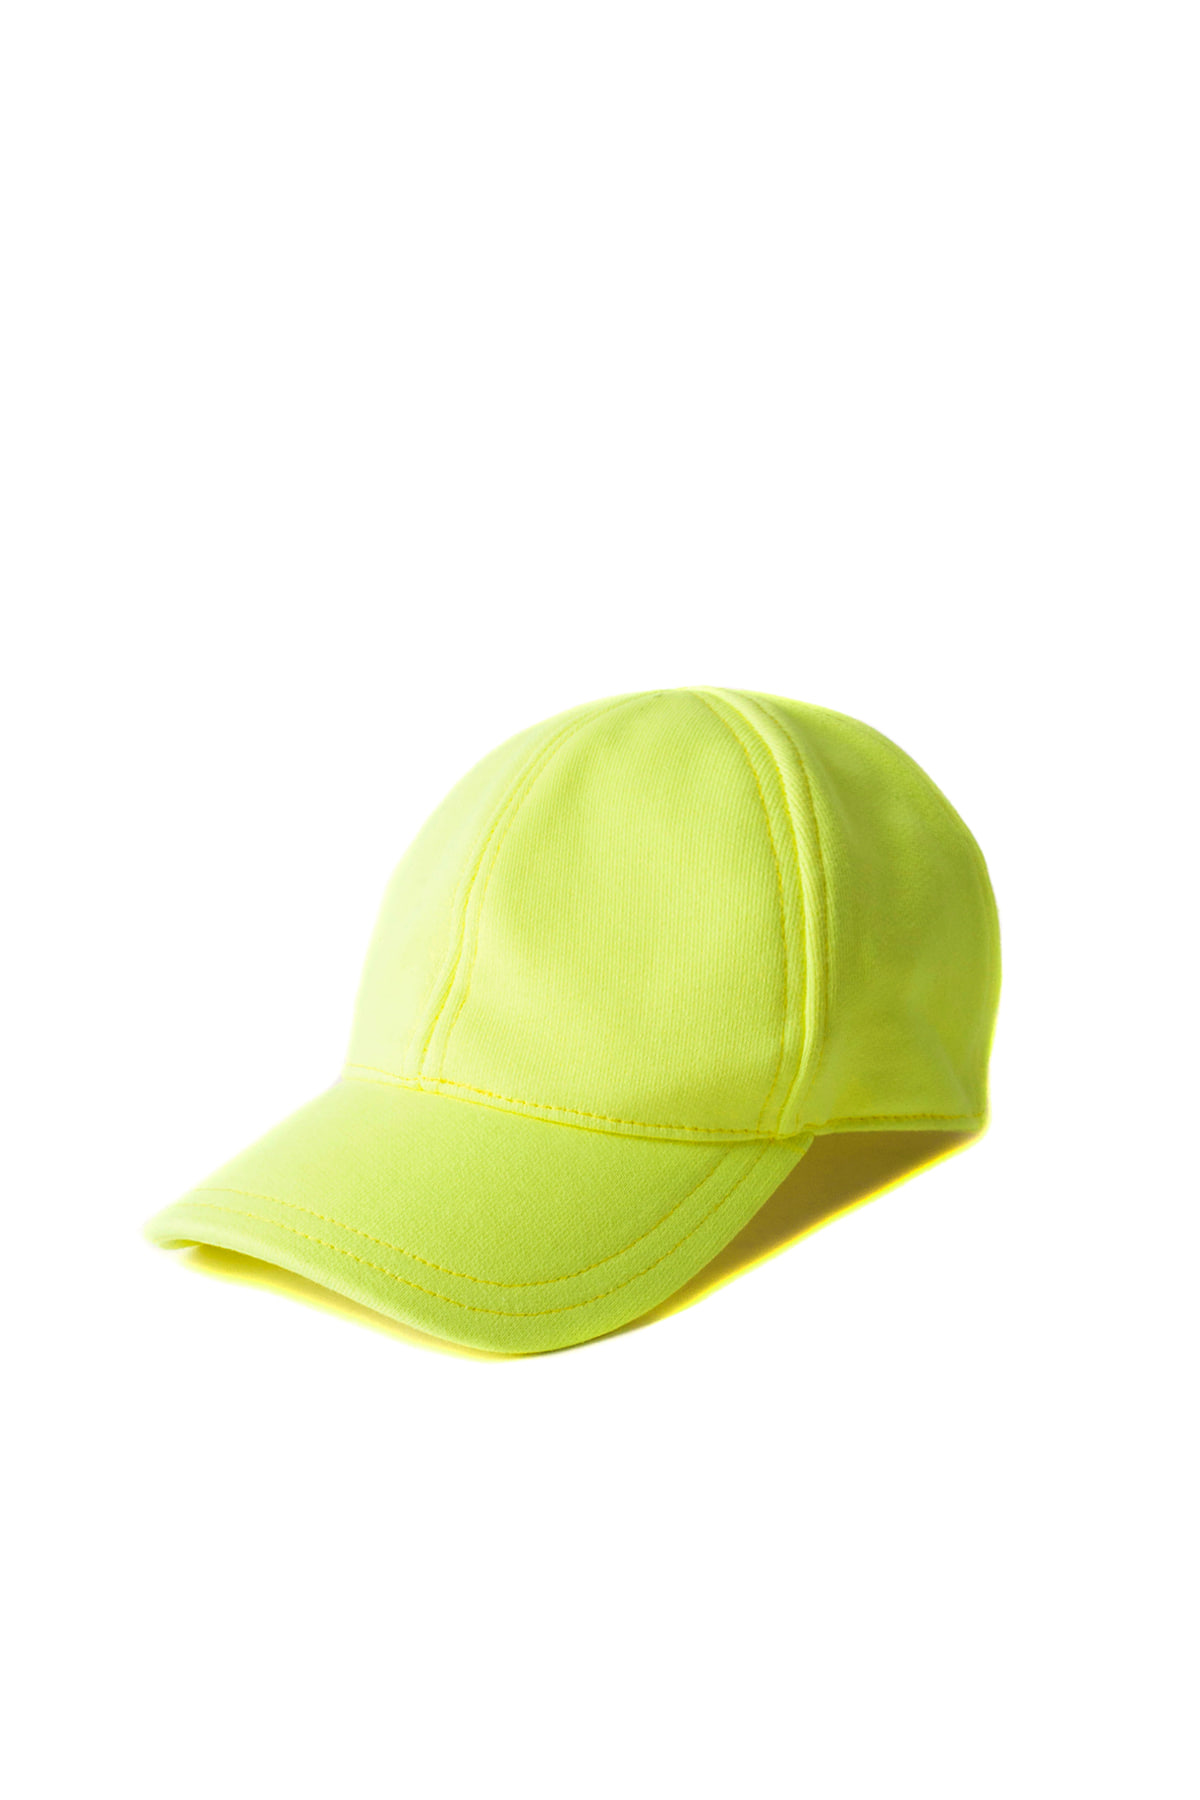 SUNNEI : Baseball Cap (Yellow)